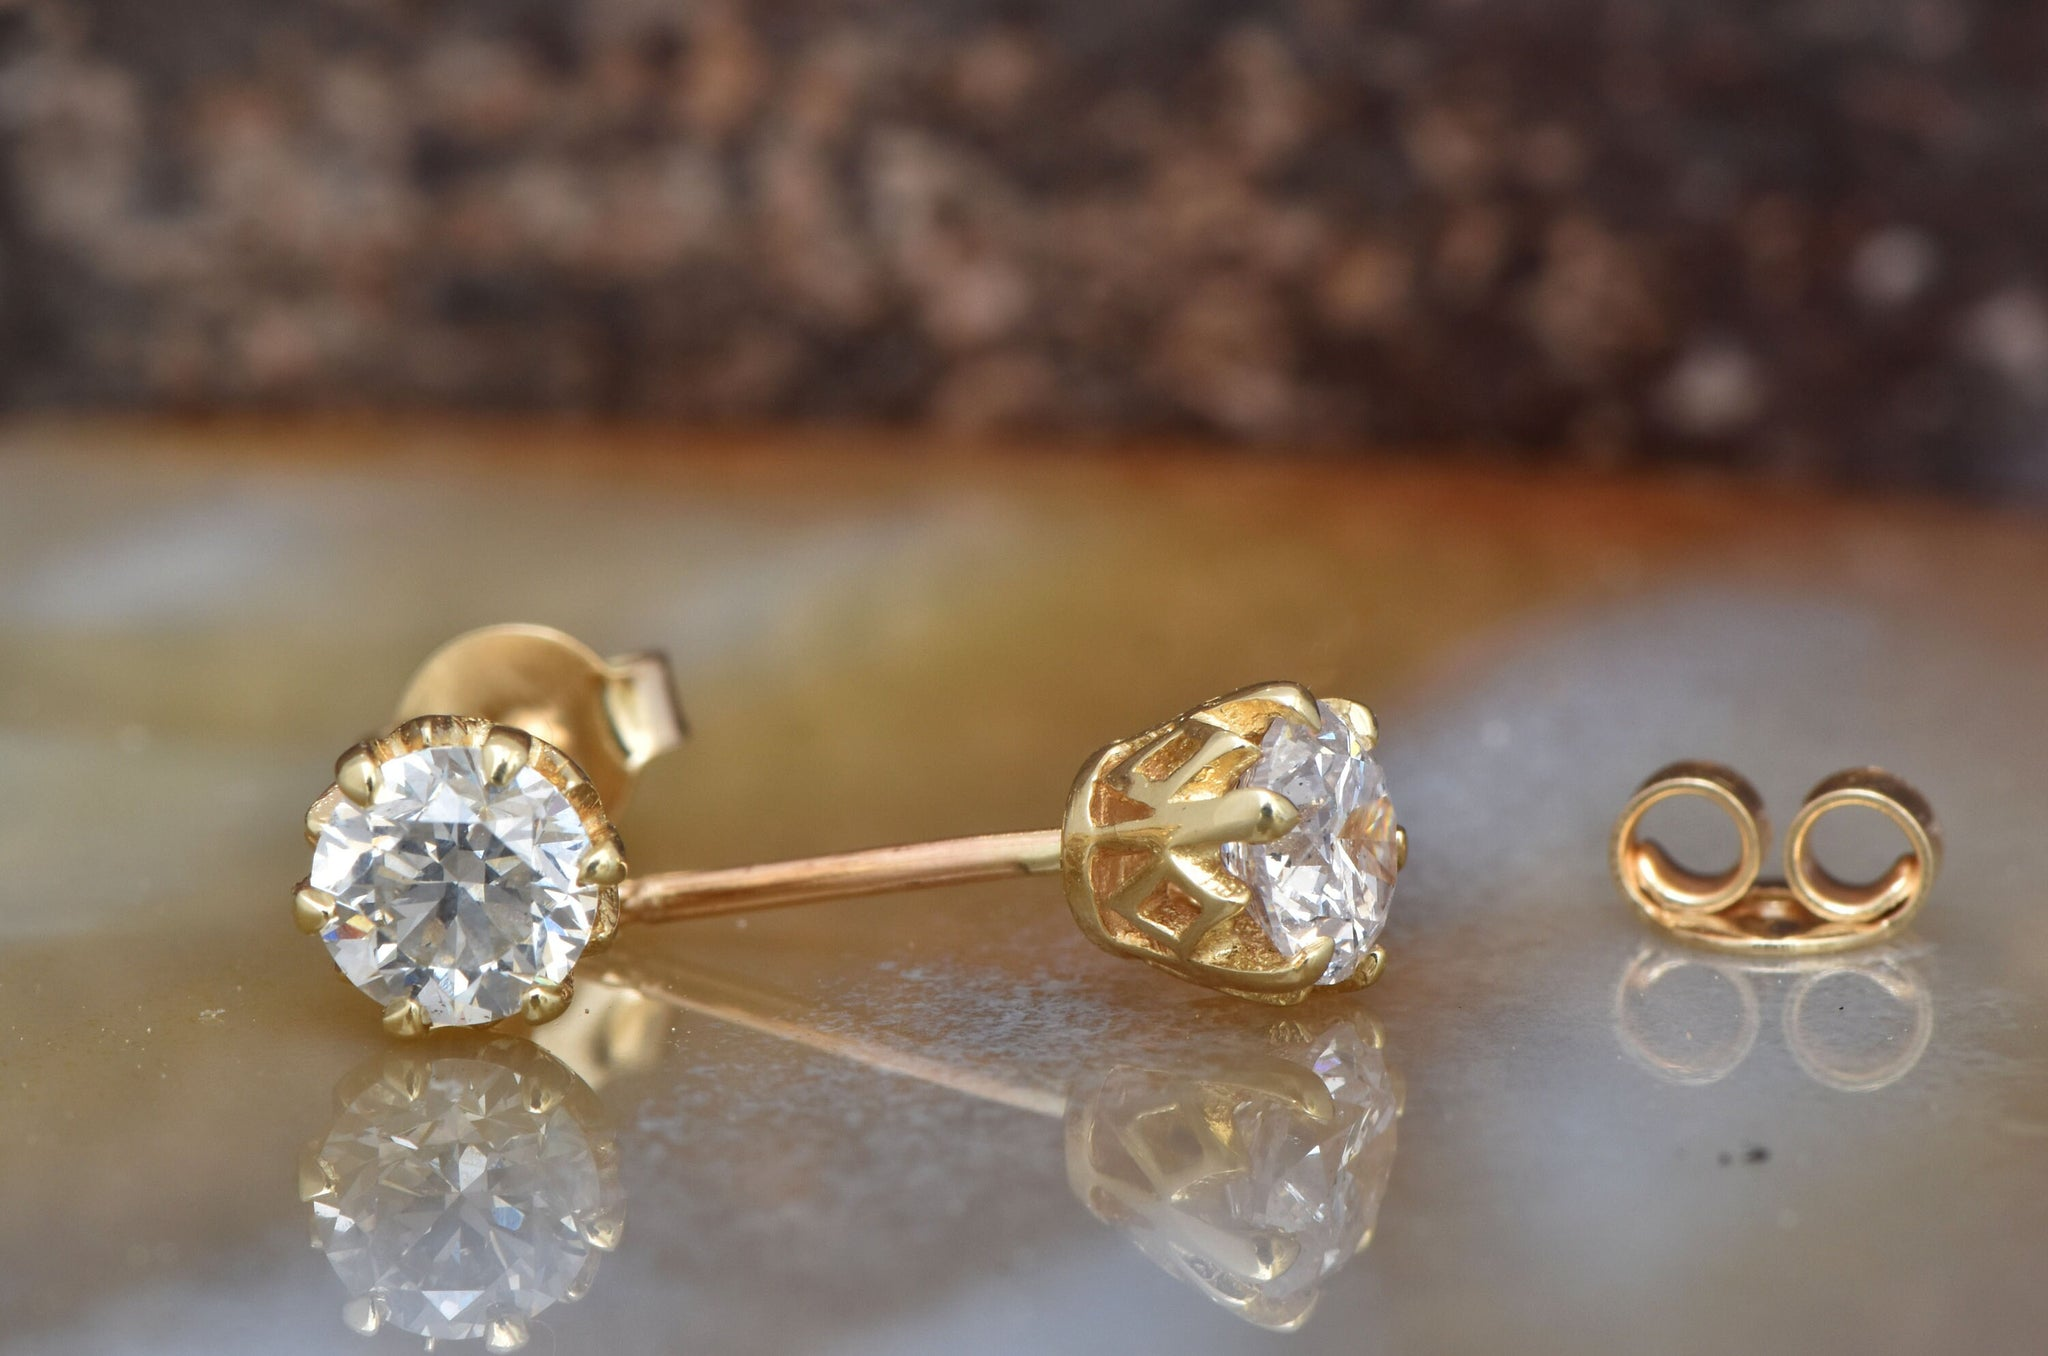 5387fd9bc1093 1 carat Diamond Earrings-Yellow Gold Earrings-Diamond Stud Earrings-Women  Jewelry-Round diamond earrings